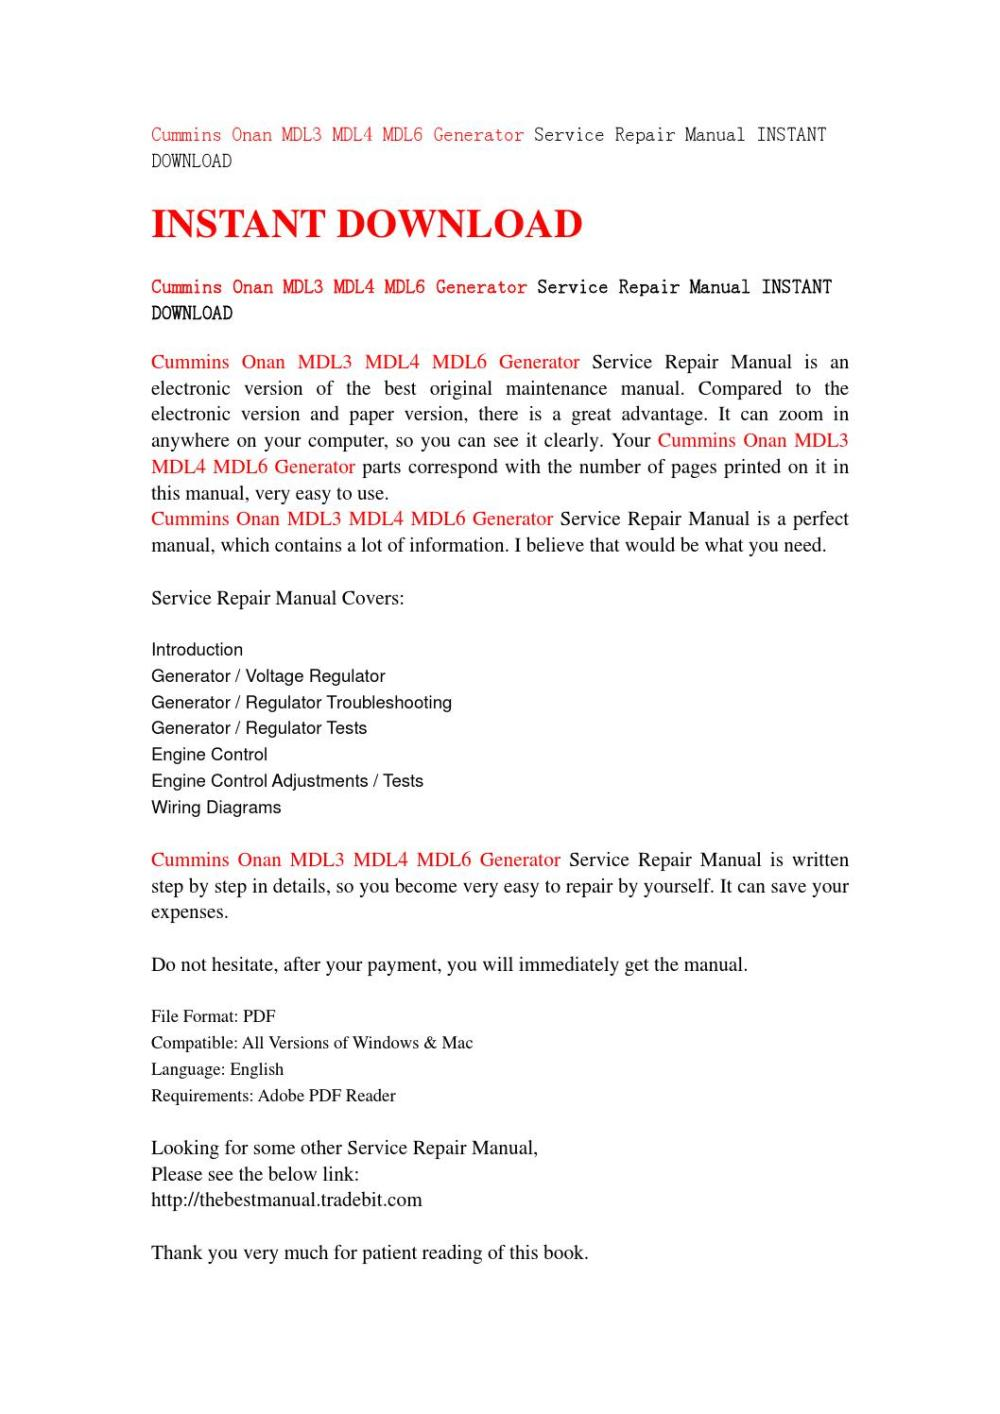 medium resolution of cummins onan mdl3 mdl4 mdl6 generator service repair manual instant download by serviemanual201525 issuu